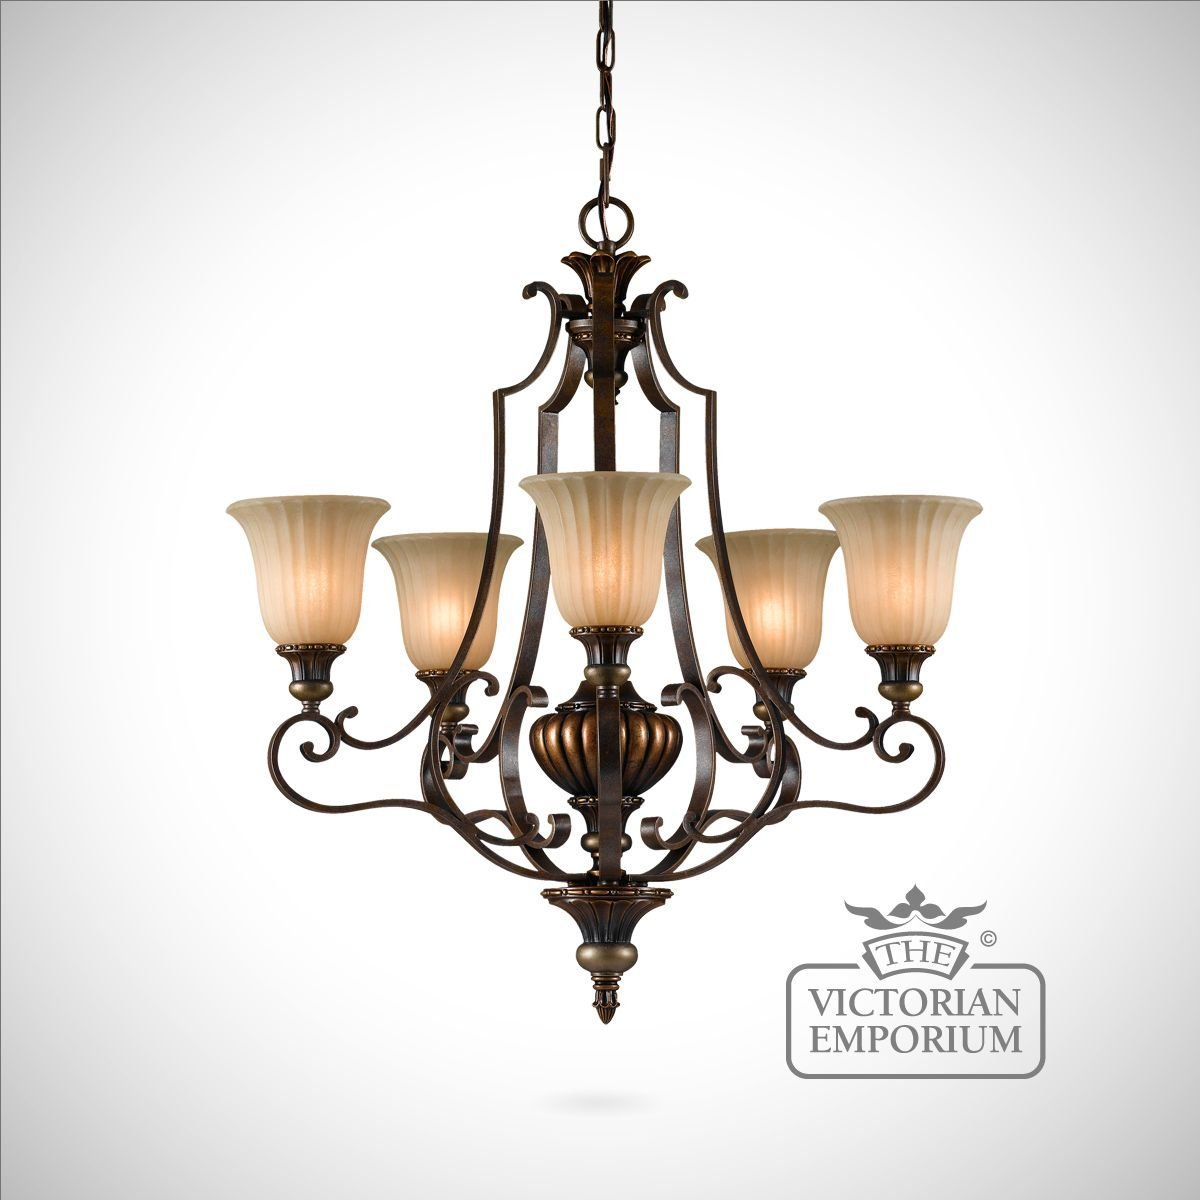 Gold and bronze decorative 5 light chandelier ceiling chandeliers - Ceiling lights and chandeliers ...